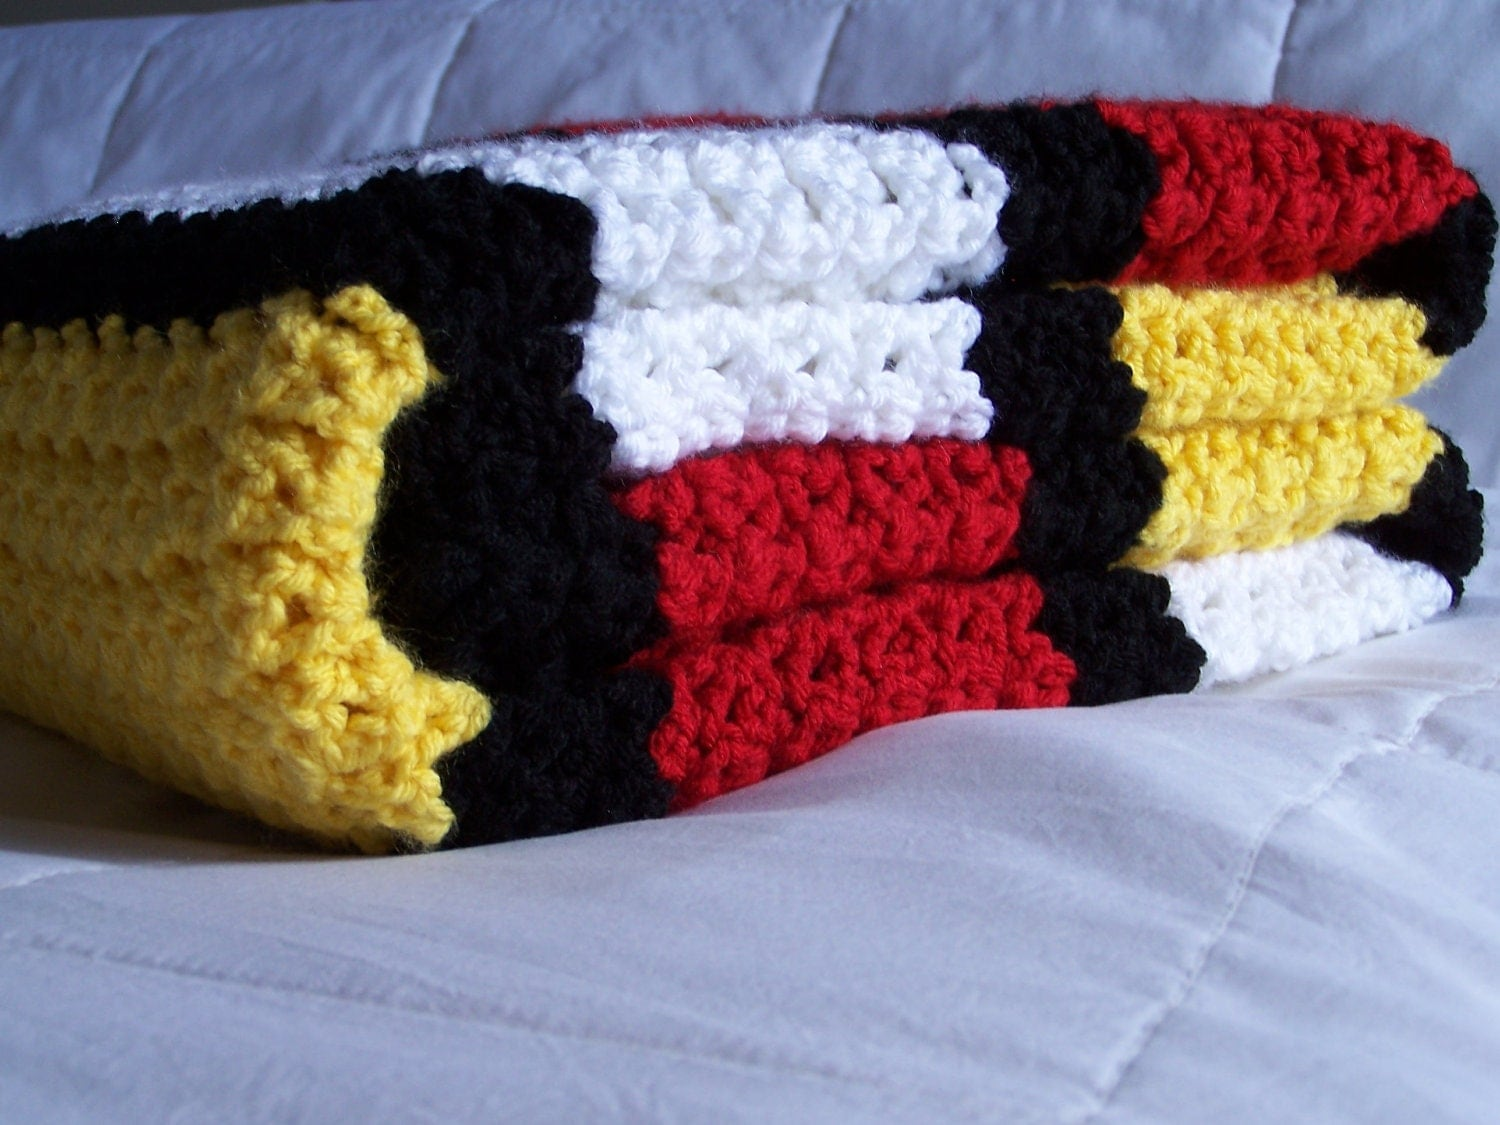 Mickey Mouse Crochet Afghan Pattern Free : Items similar to Mickey Mouse Blanket on Etsy